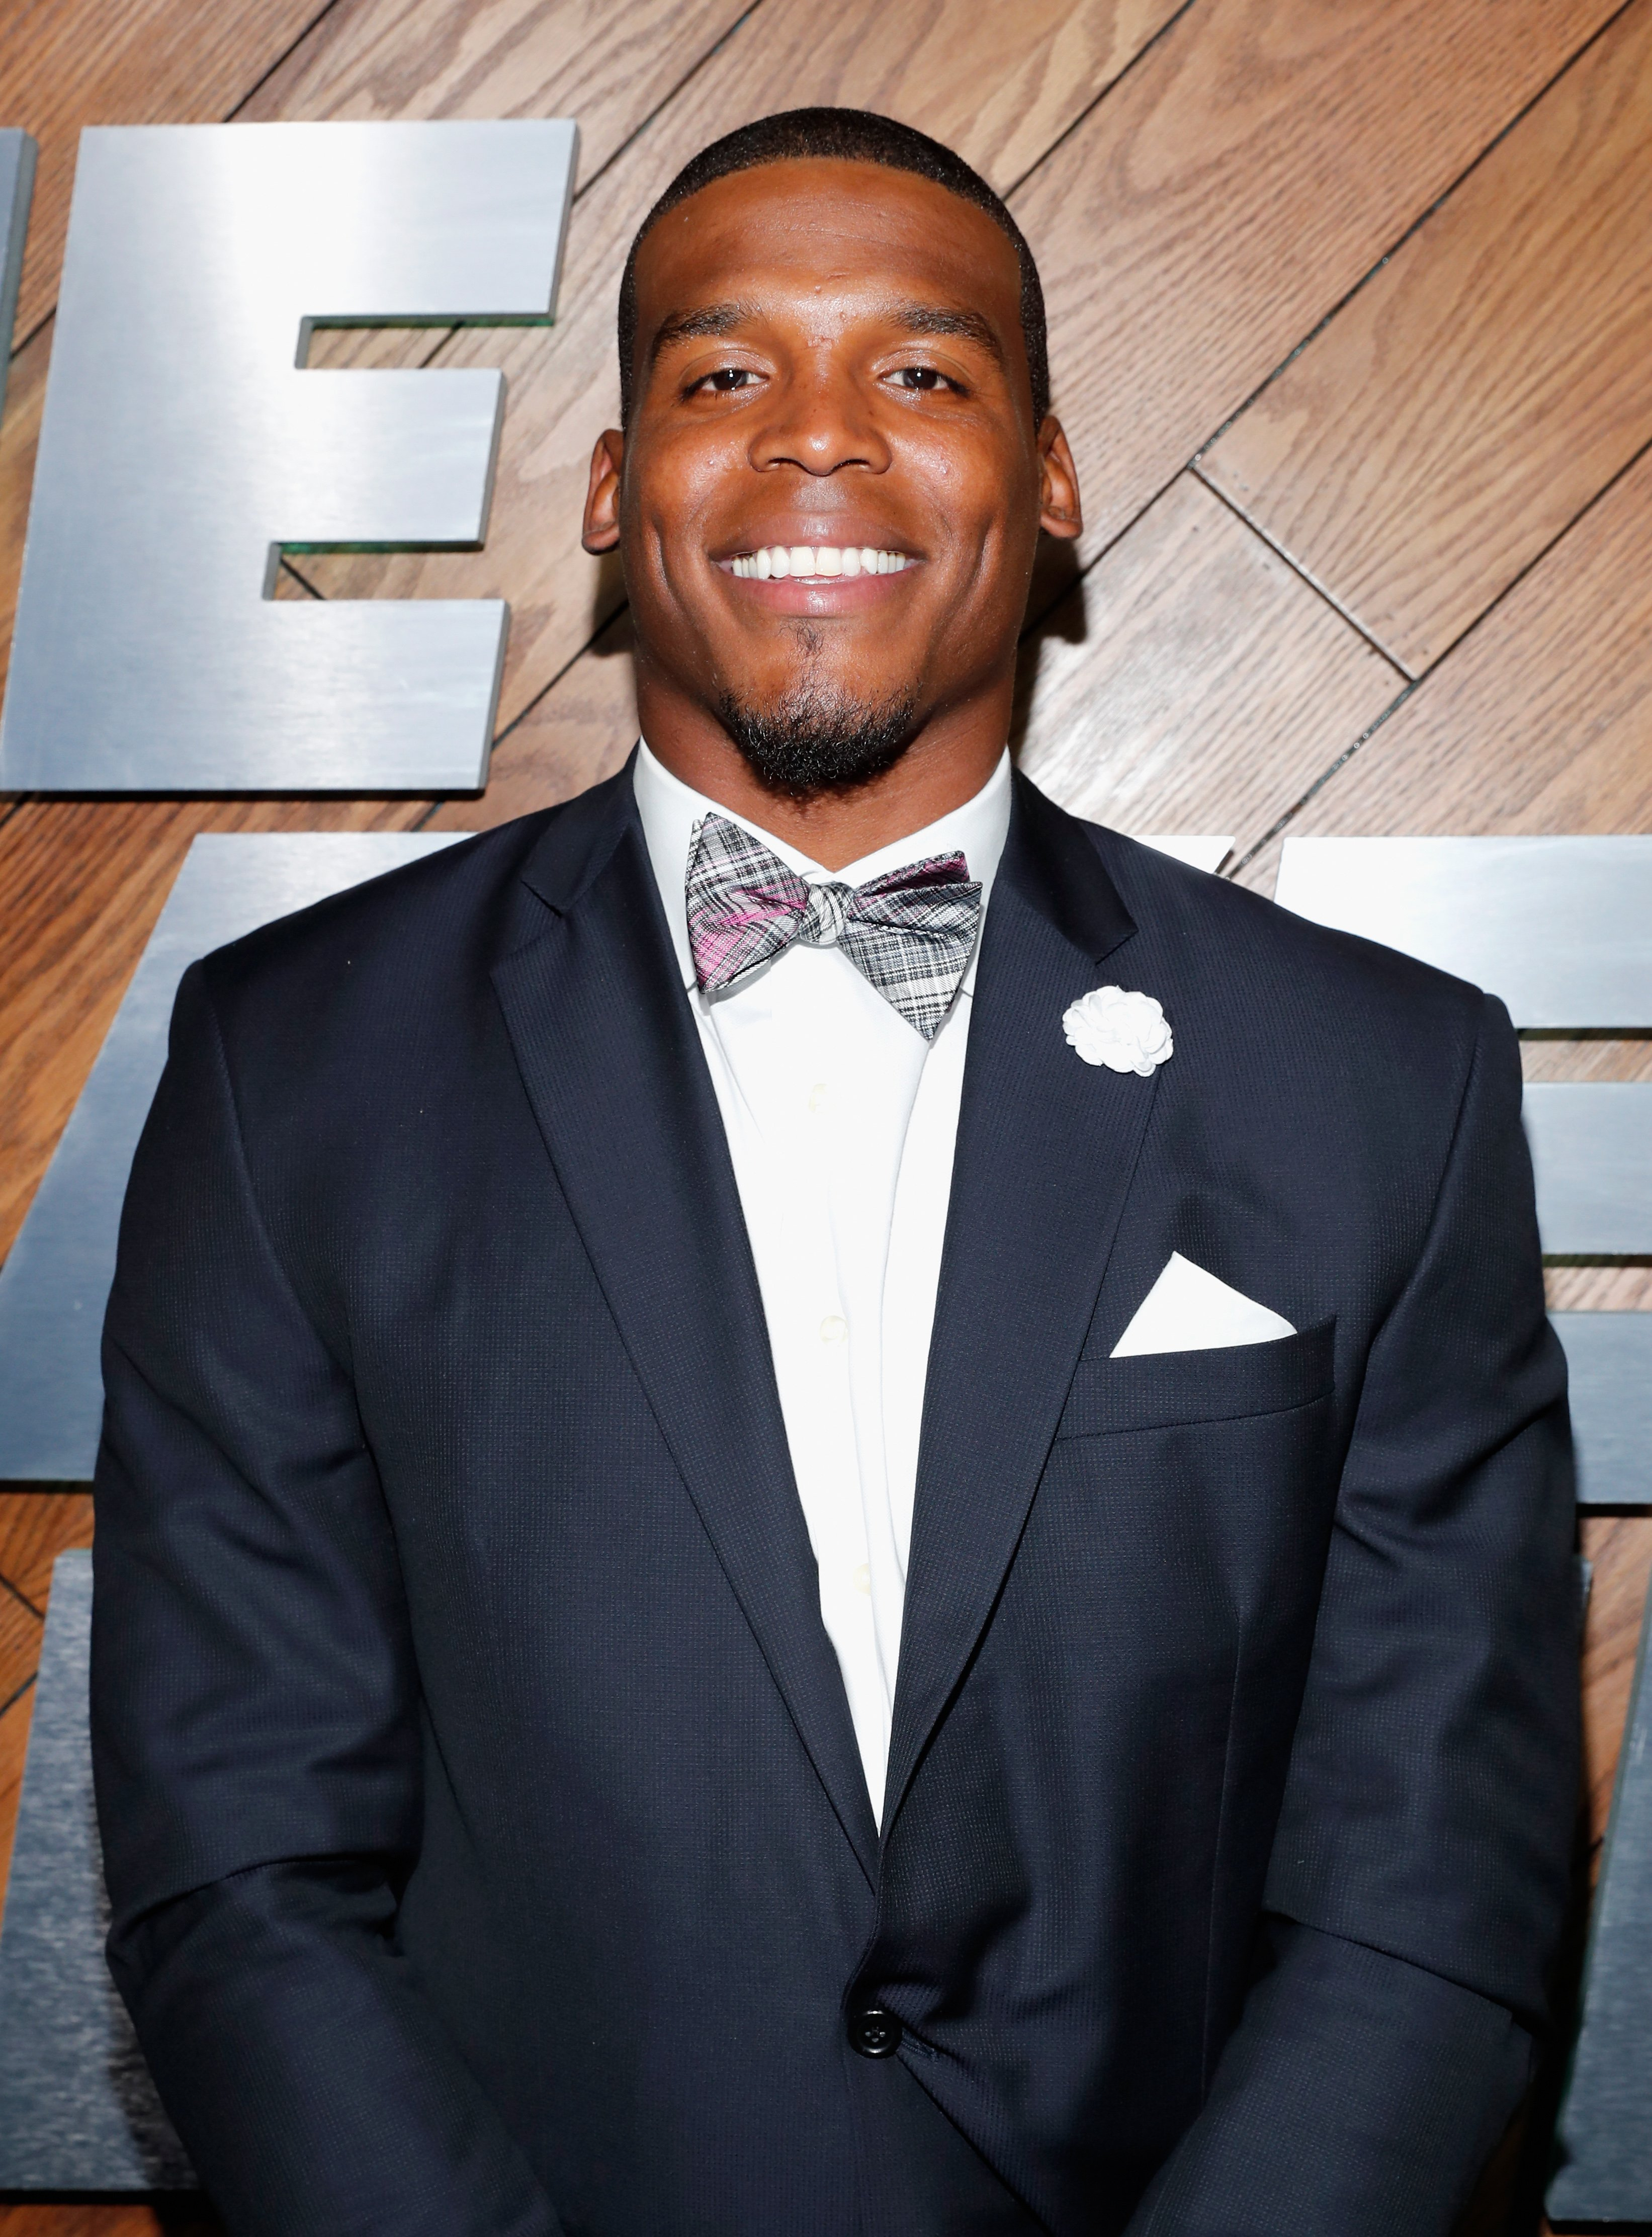 """Cam Newton attending the """"The Players' Tribune Summer Party"""" in July 2016. 